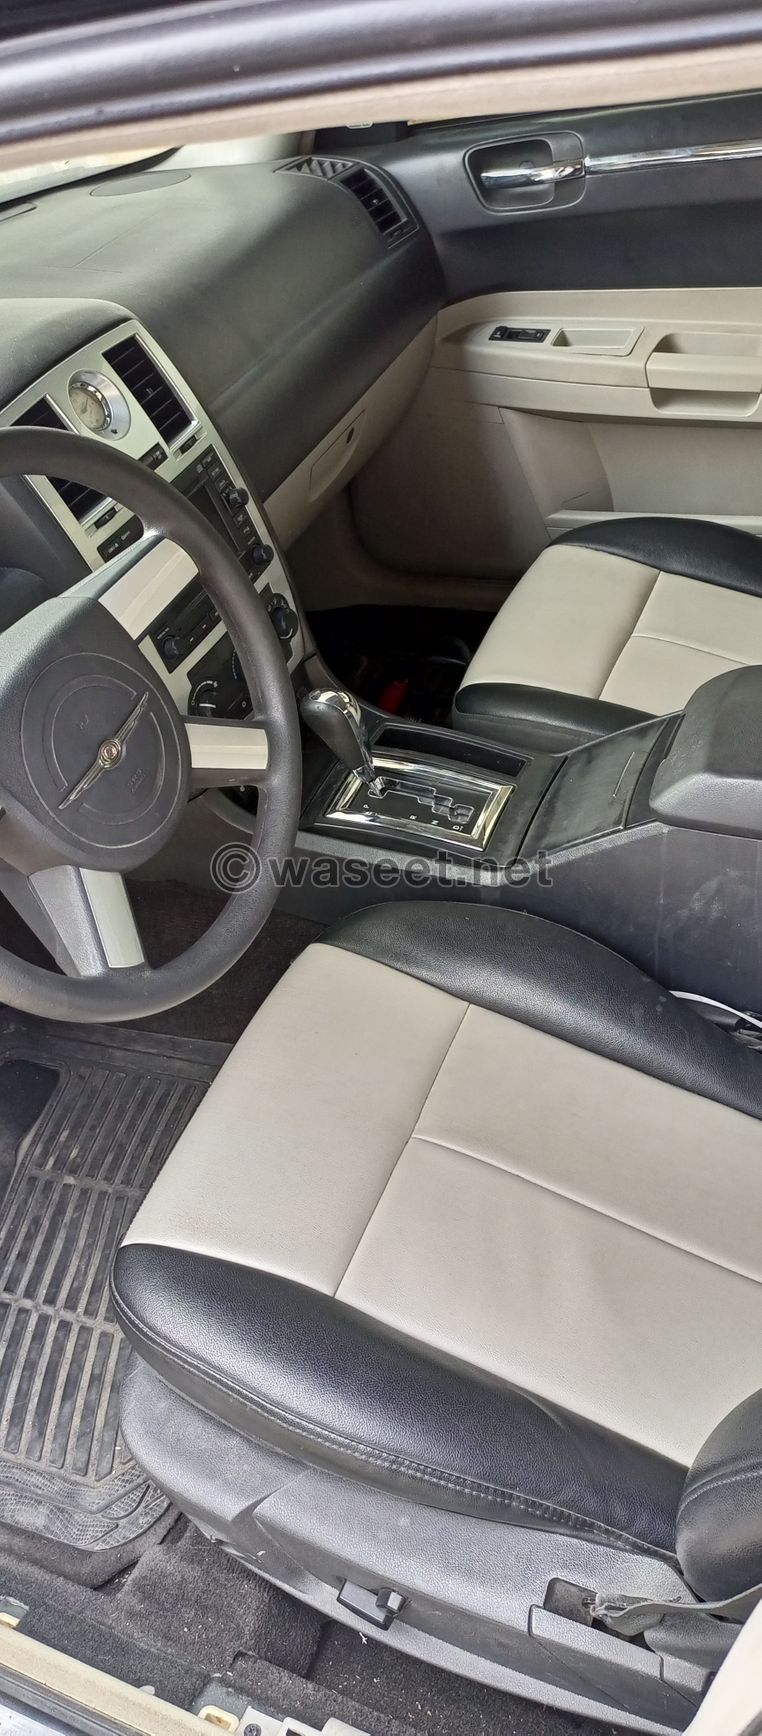 Chrysler 300 touring special edition full 6cylinder engine 2006 7